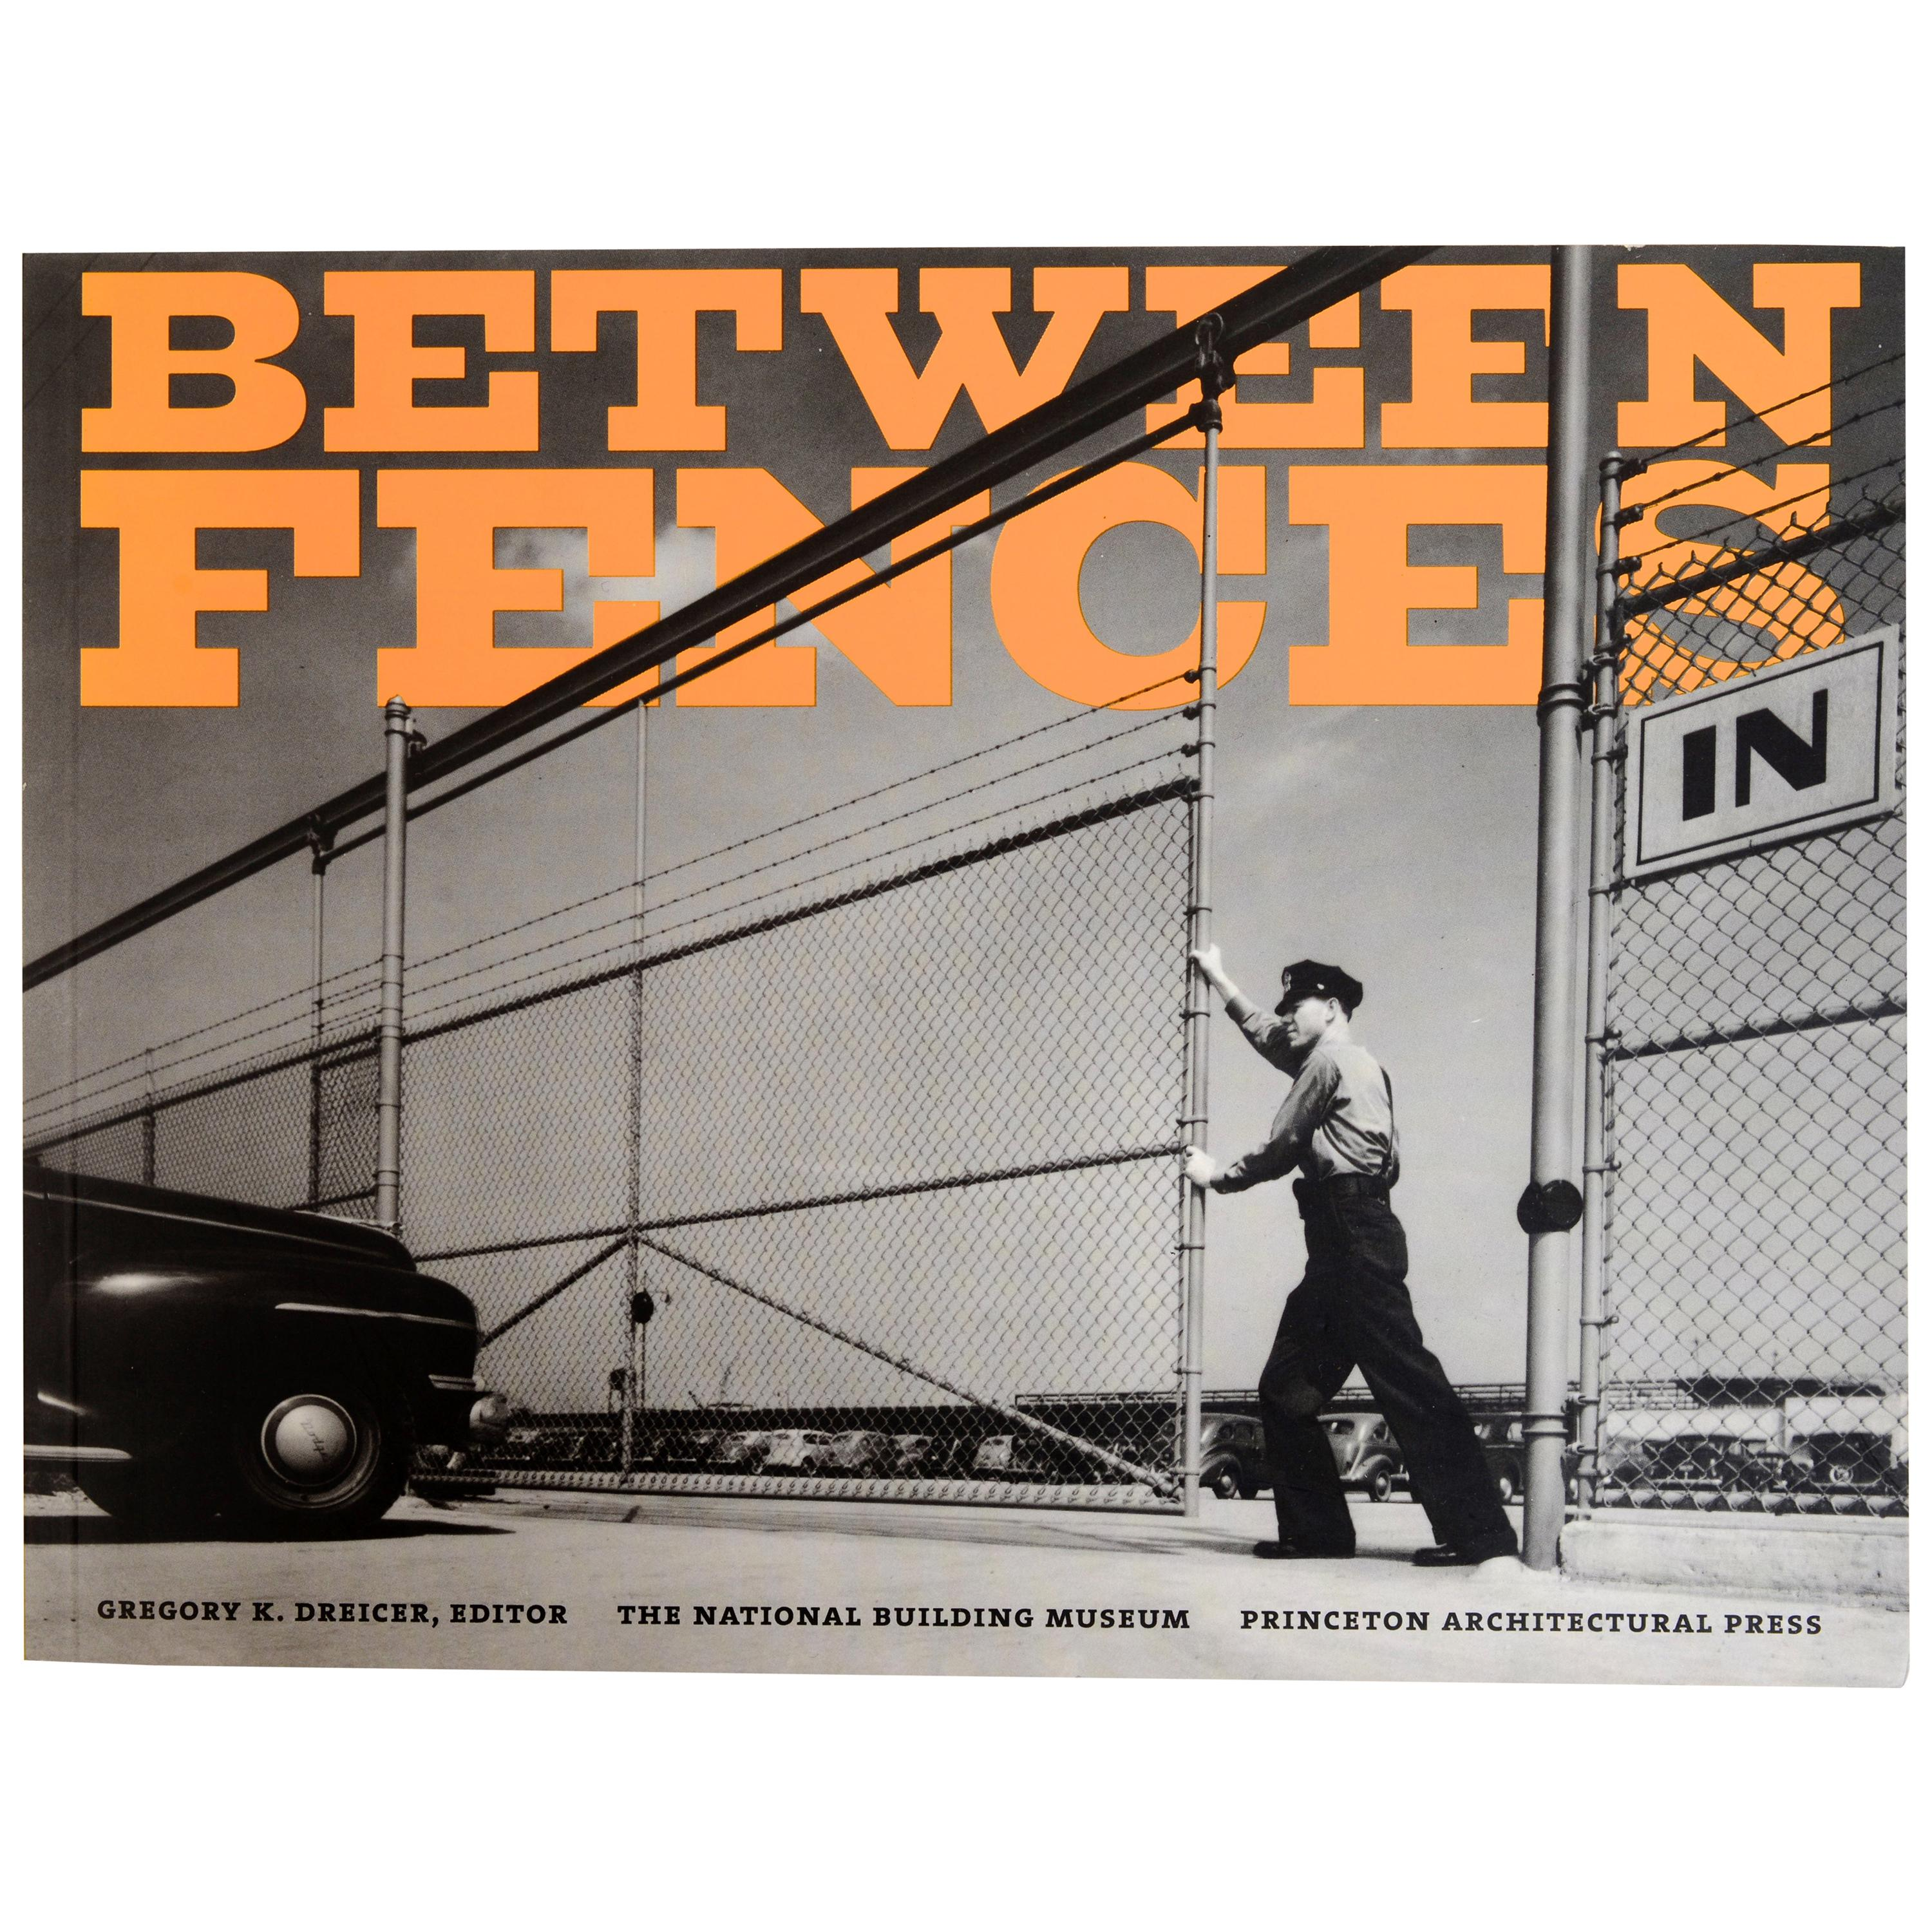 Between Fences by Gregory K. Dreicer, States 1st Ed